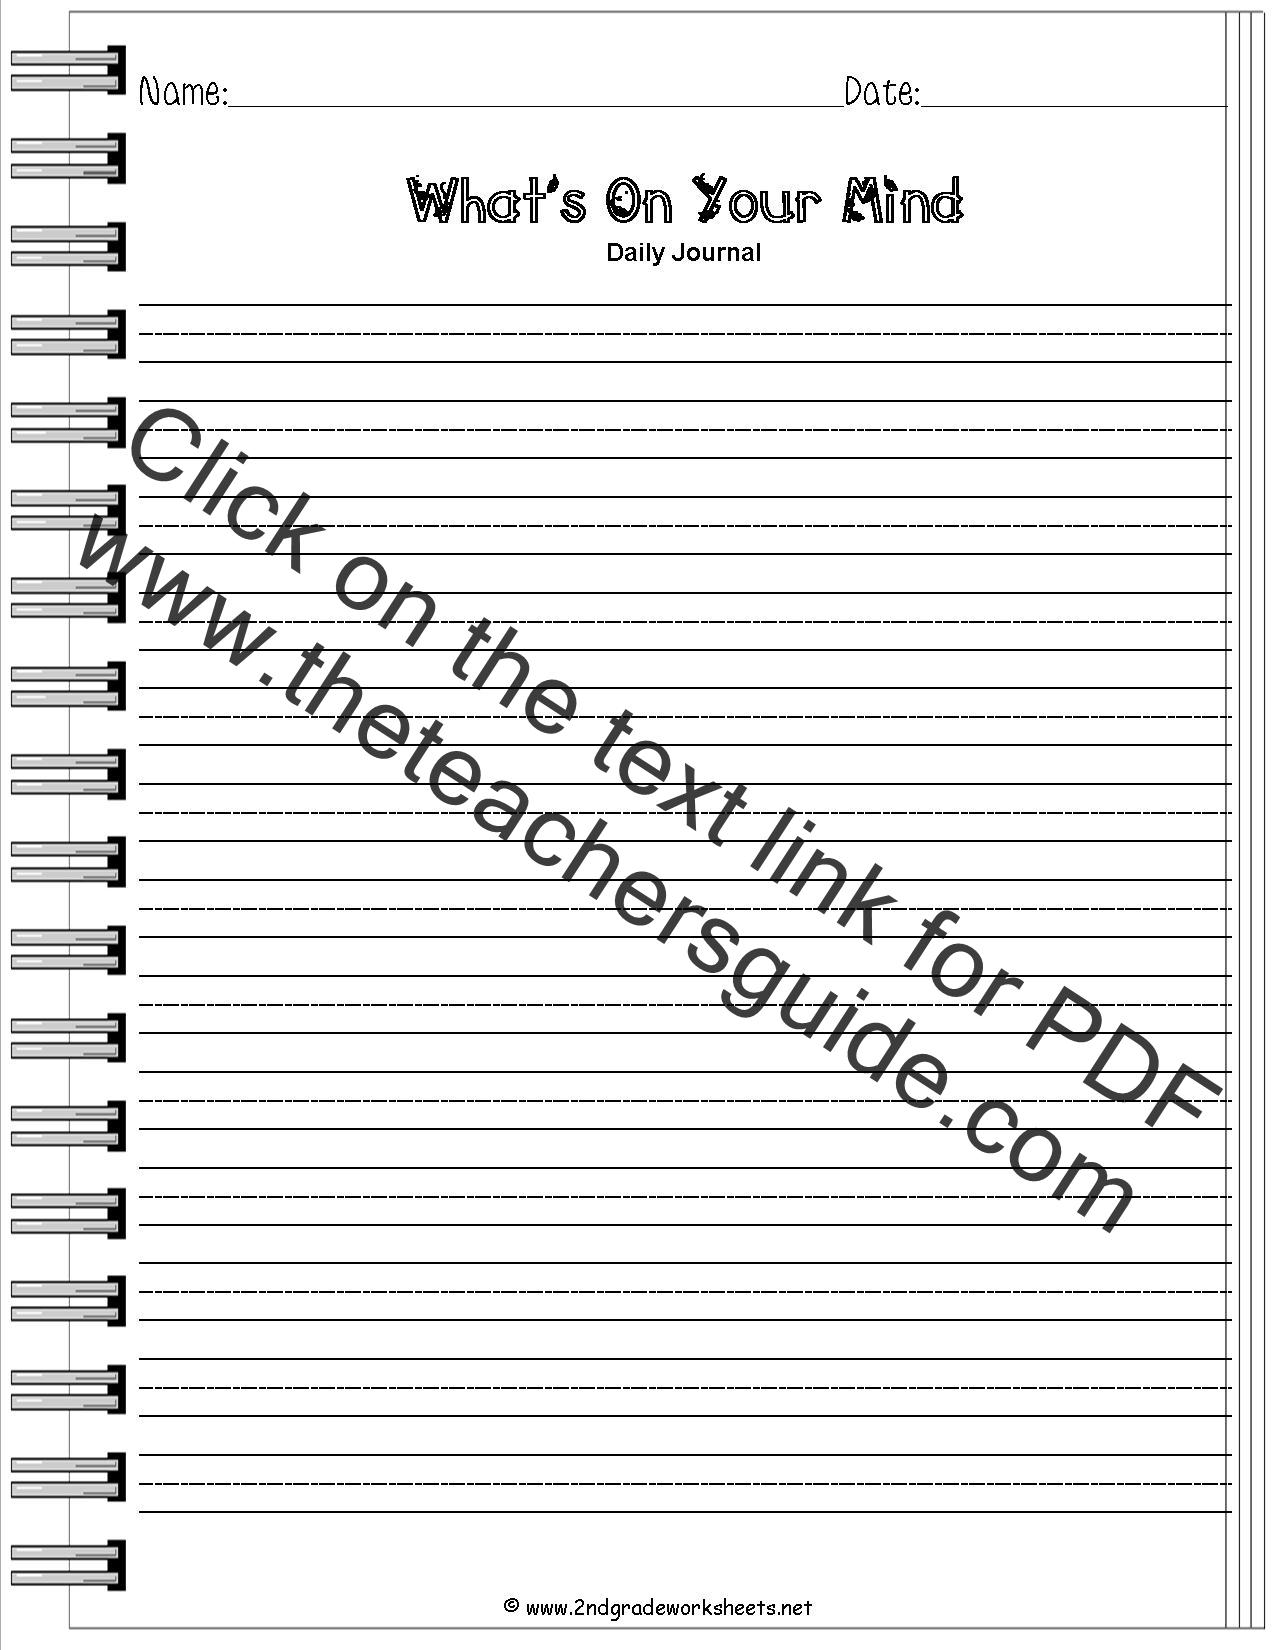 2nd grade writing prompts & composition worksheets page 2